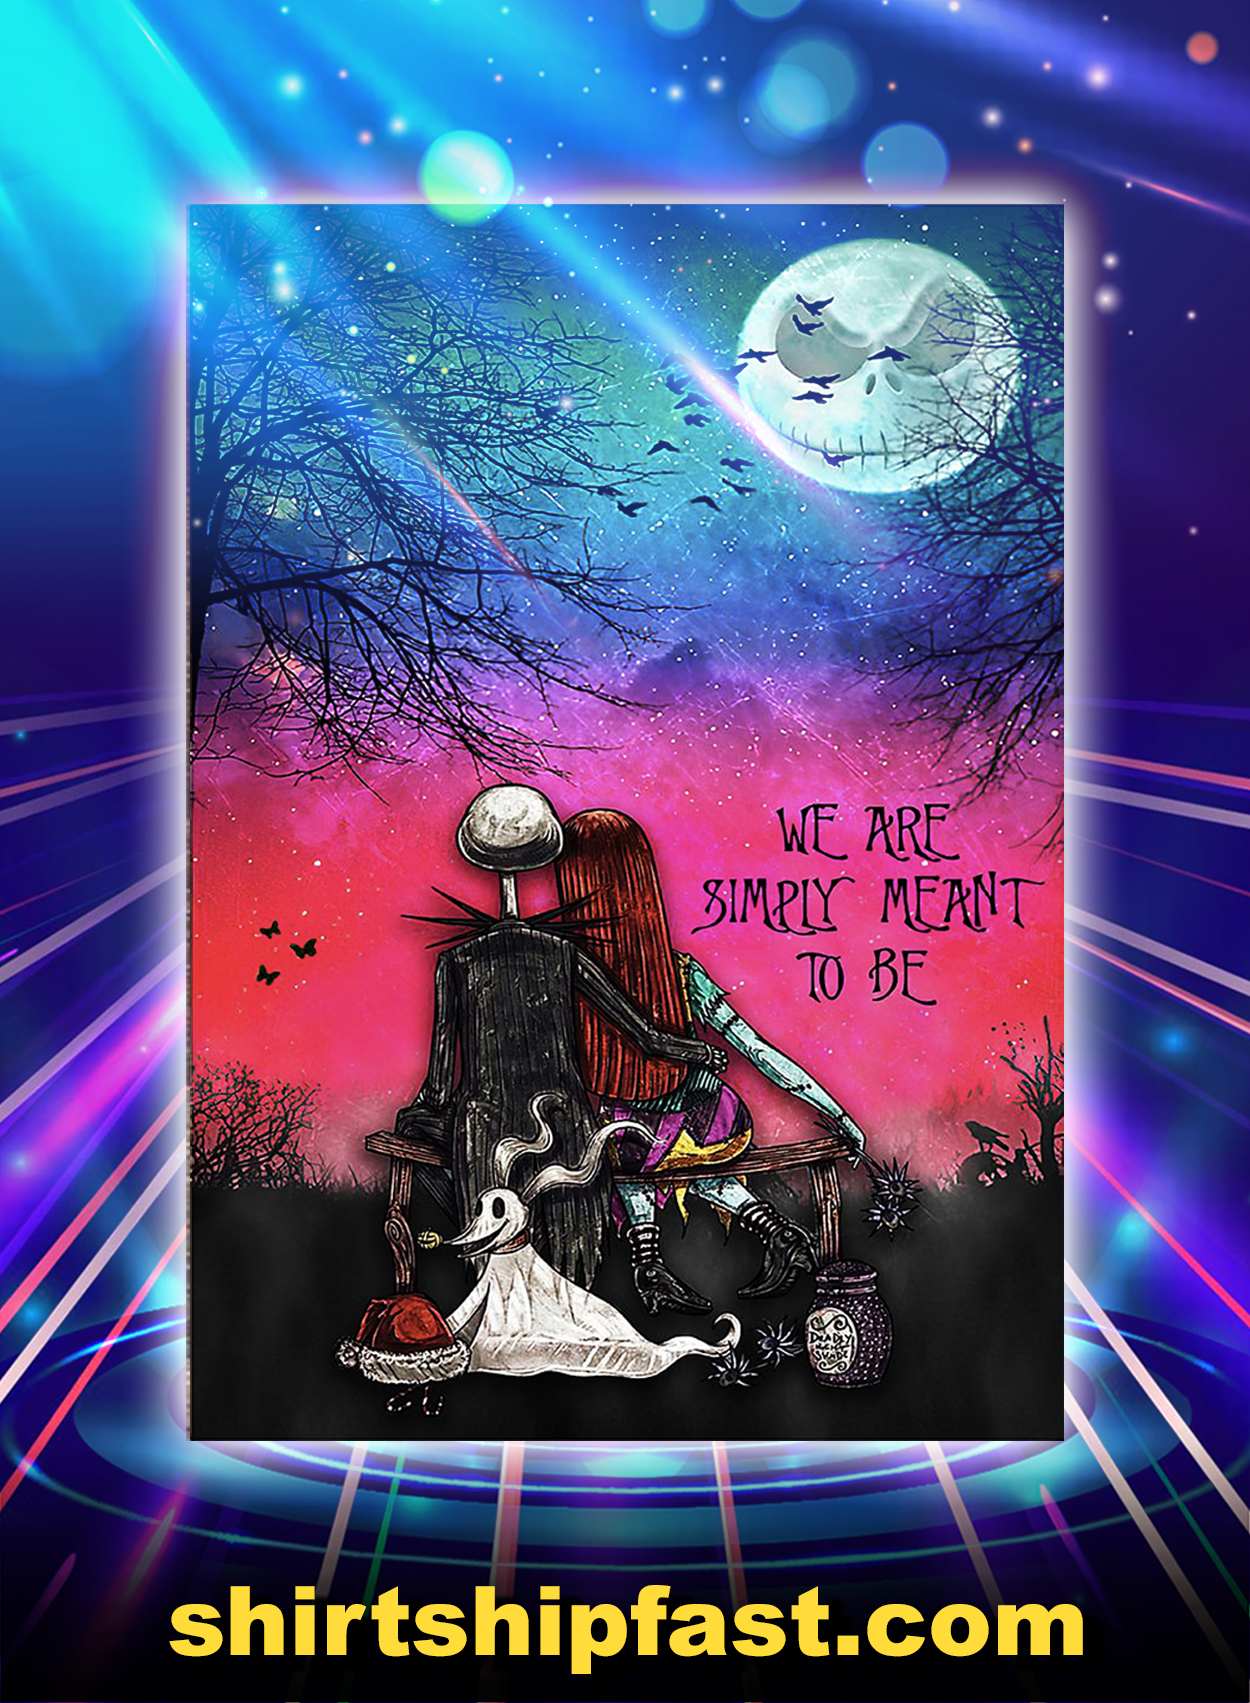 Jack and sally we are simply meant to be poster - A3